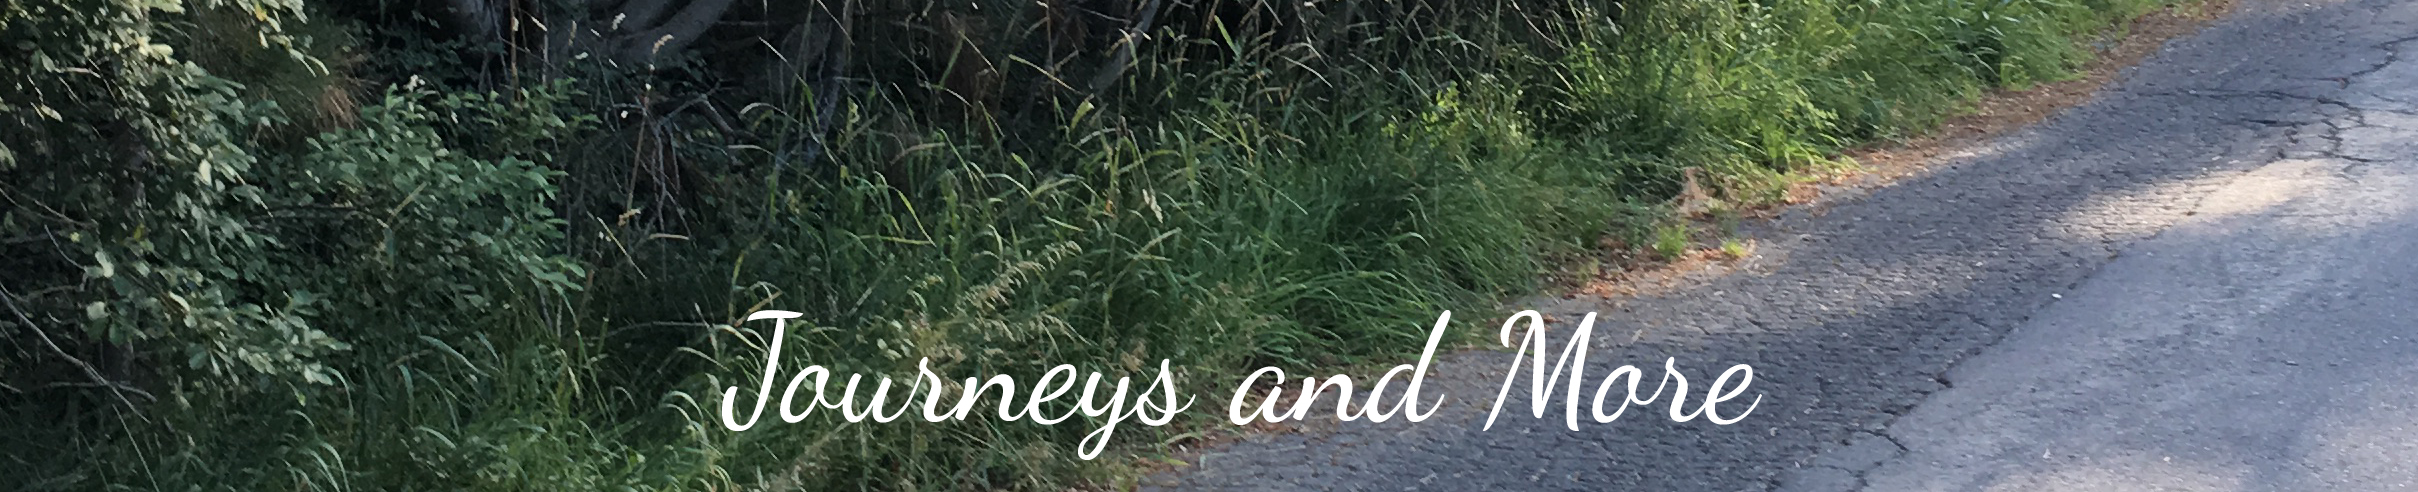 Journeys and More blog banner